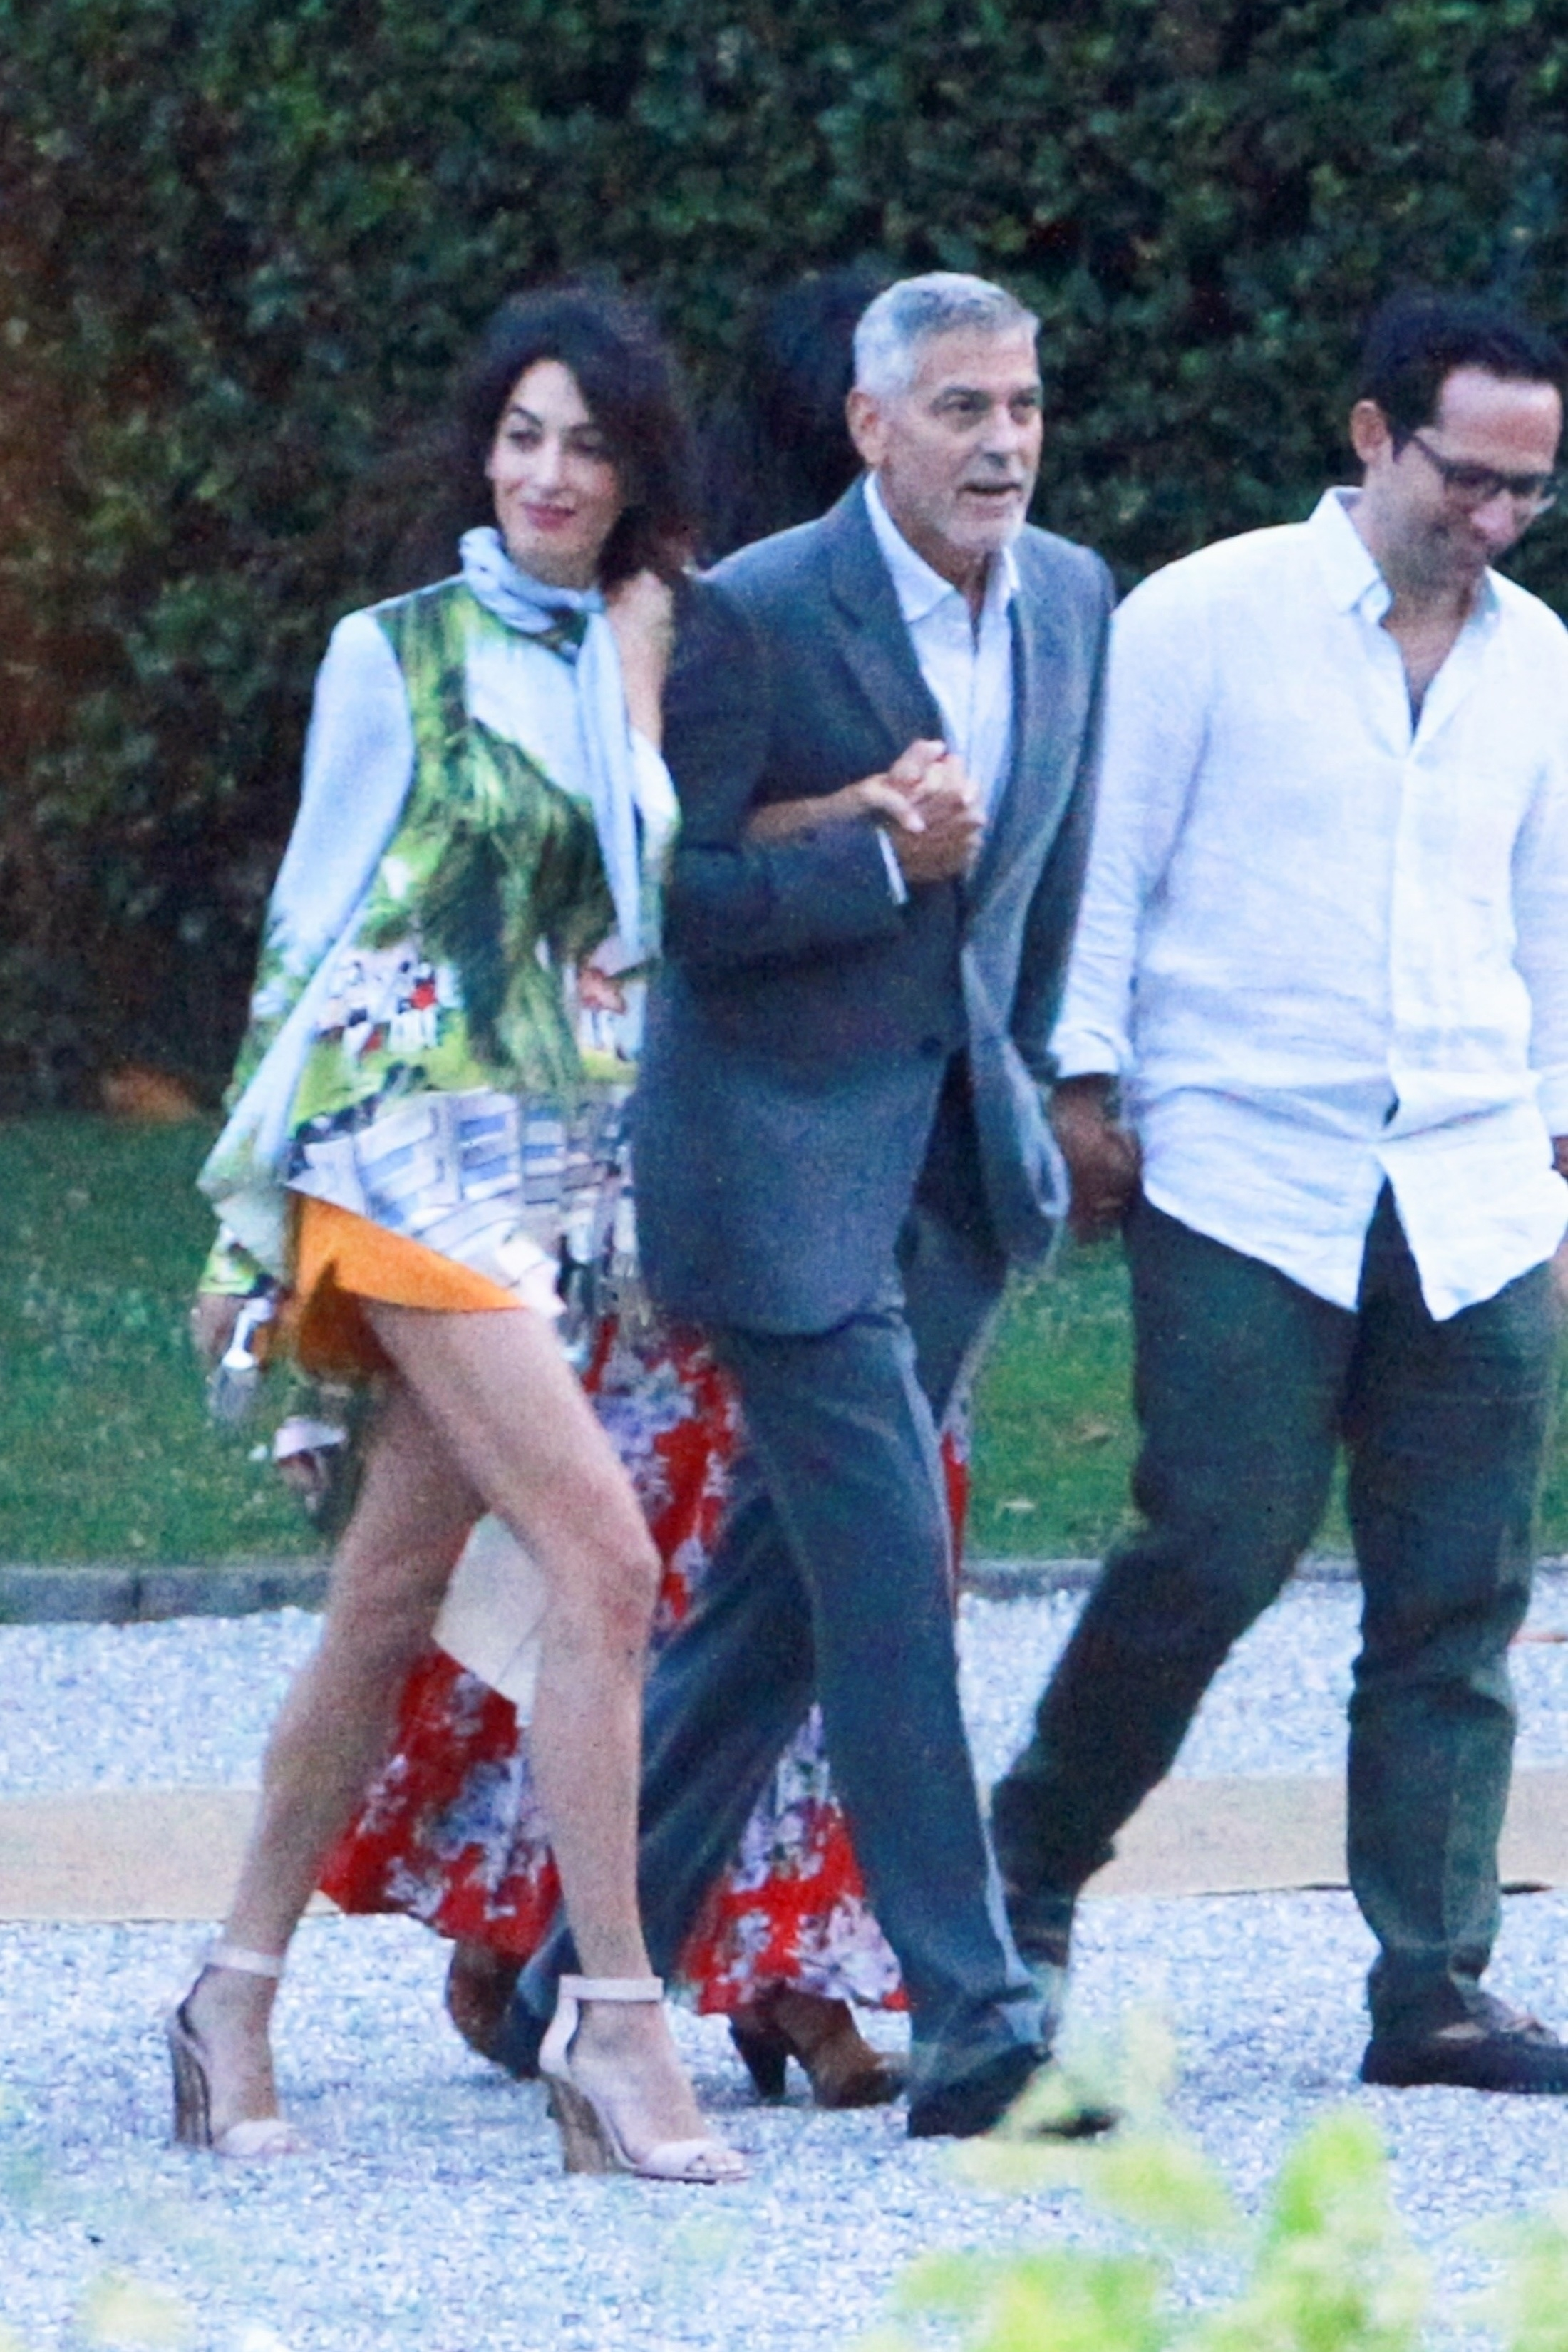 George Clooney and wife Amal Clooney spend the evening with friends at Villa D'Este restaurant in Lake Como, Italy, on July 28, 2018.